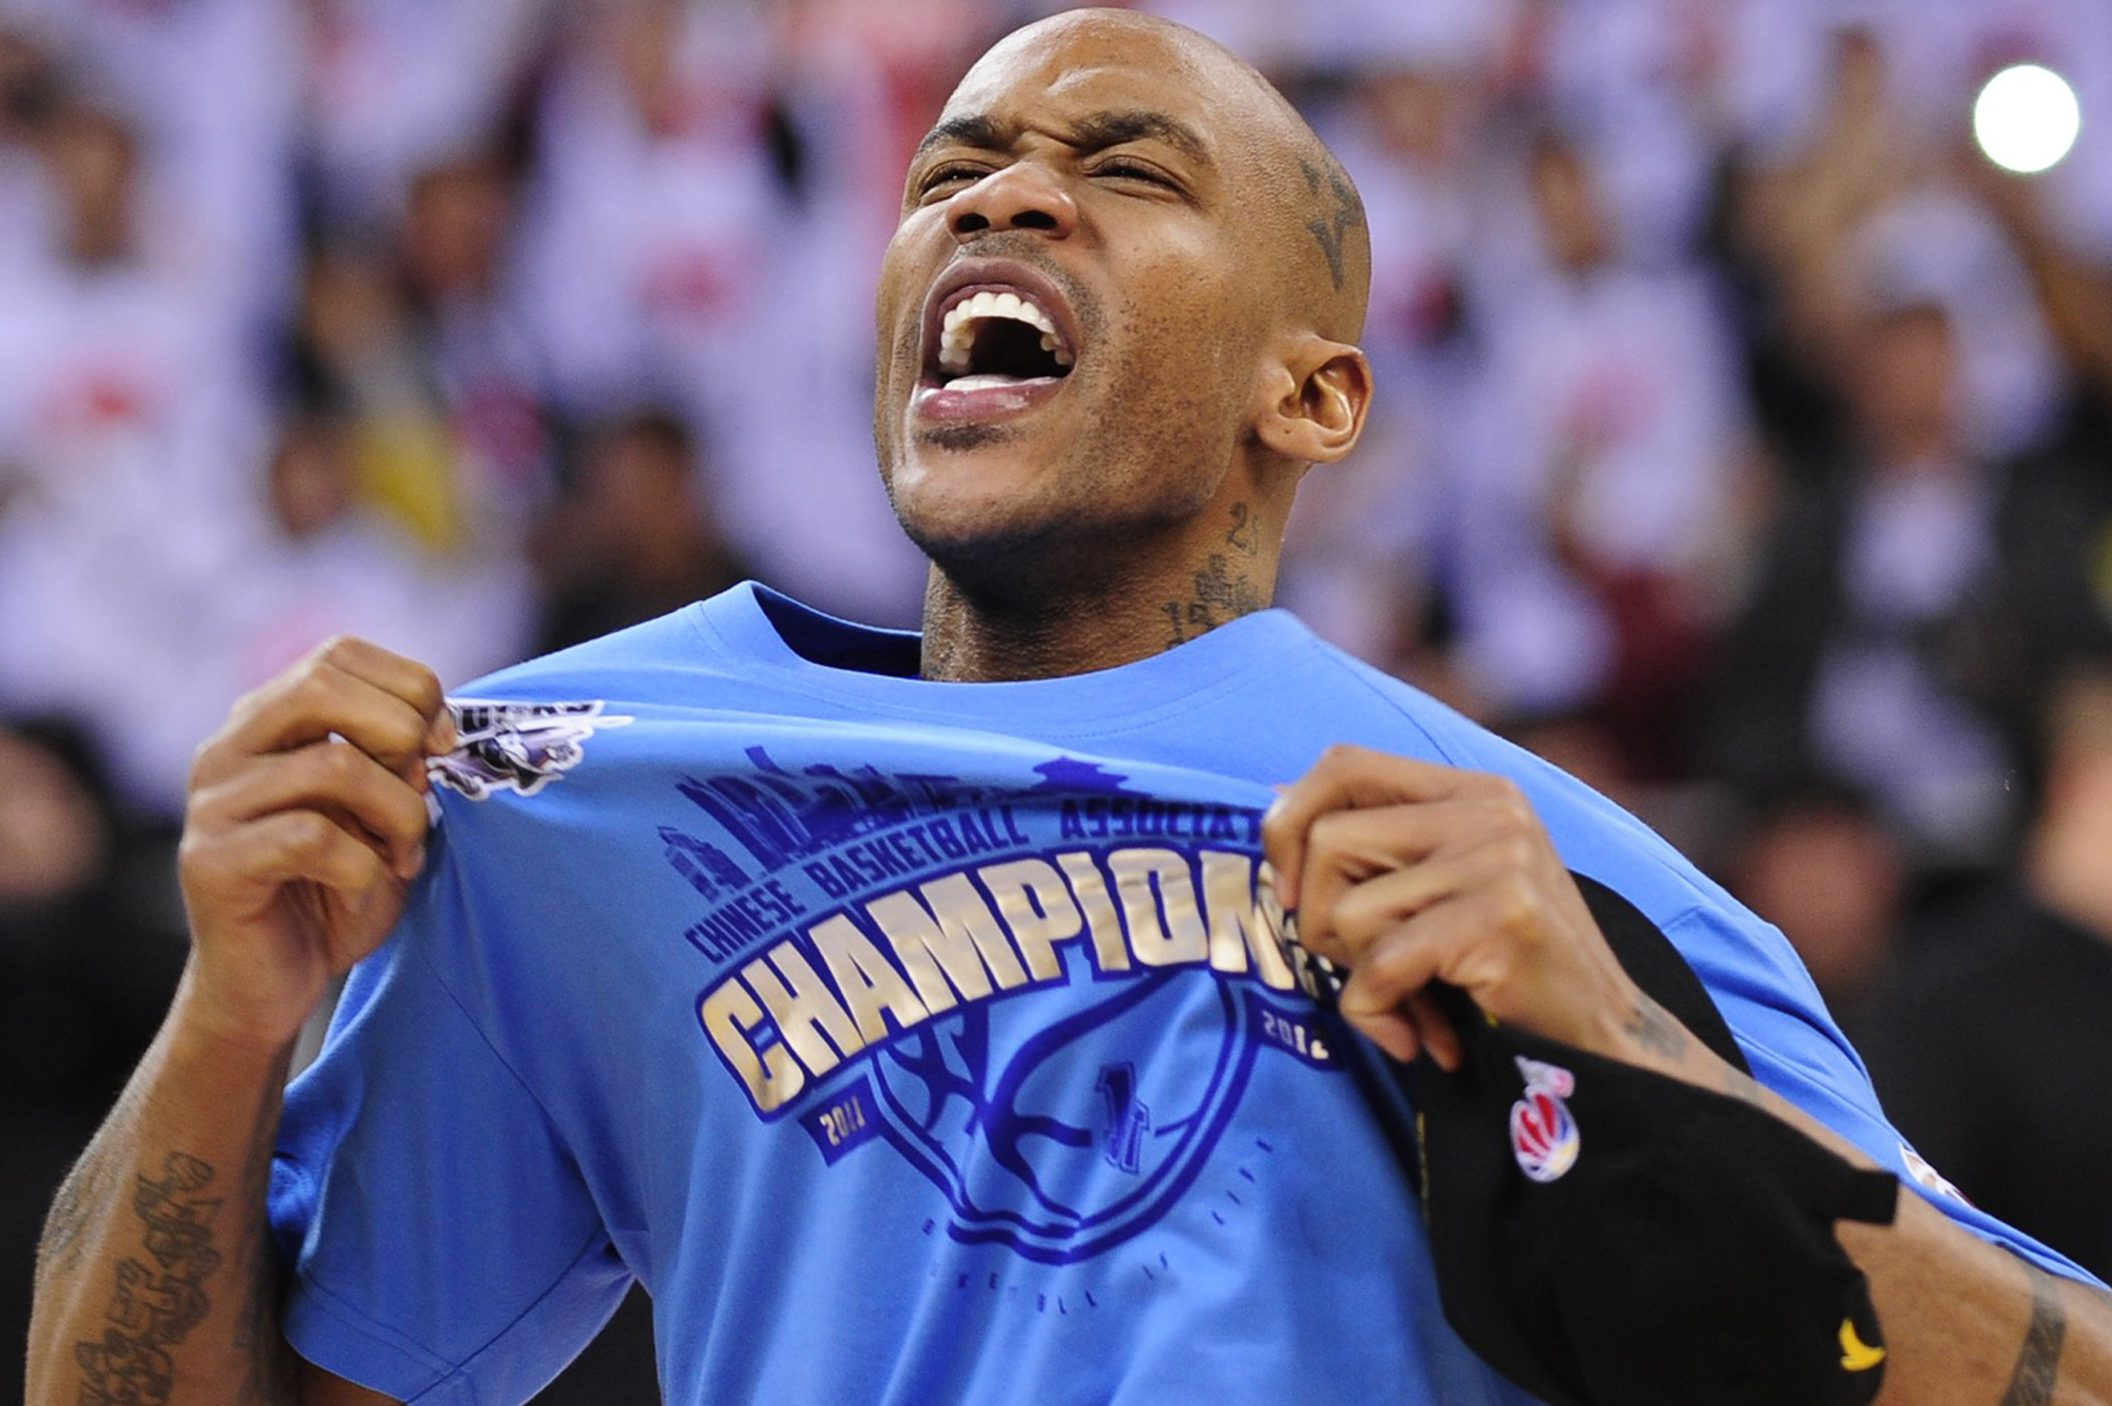 Marbury celebrates after his team, the Beijing Ducks, won their first-ever Chinese championship. Marbury scored 41 points as the host team knocked off title holders Guangdong Tigers 124-121.